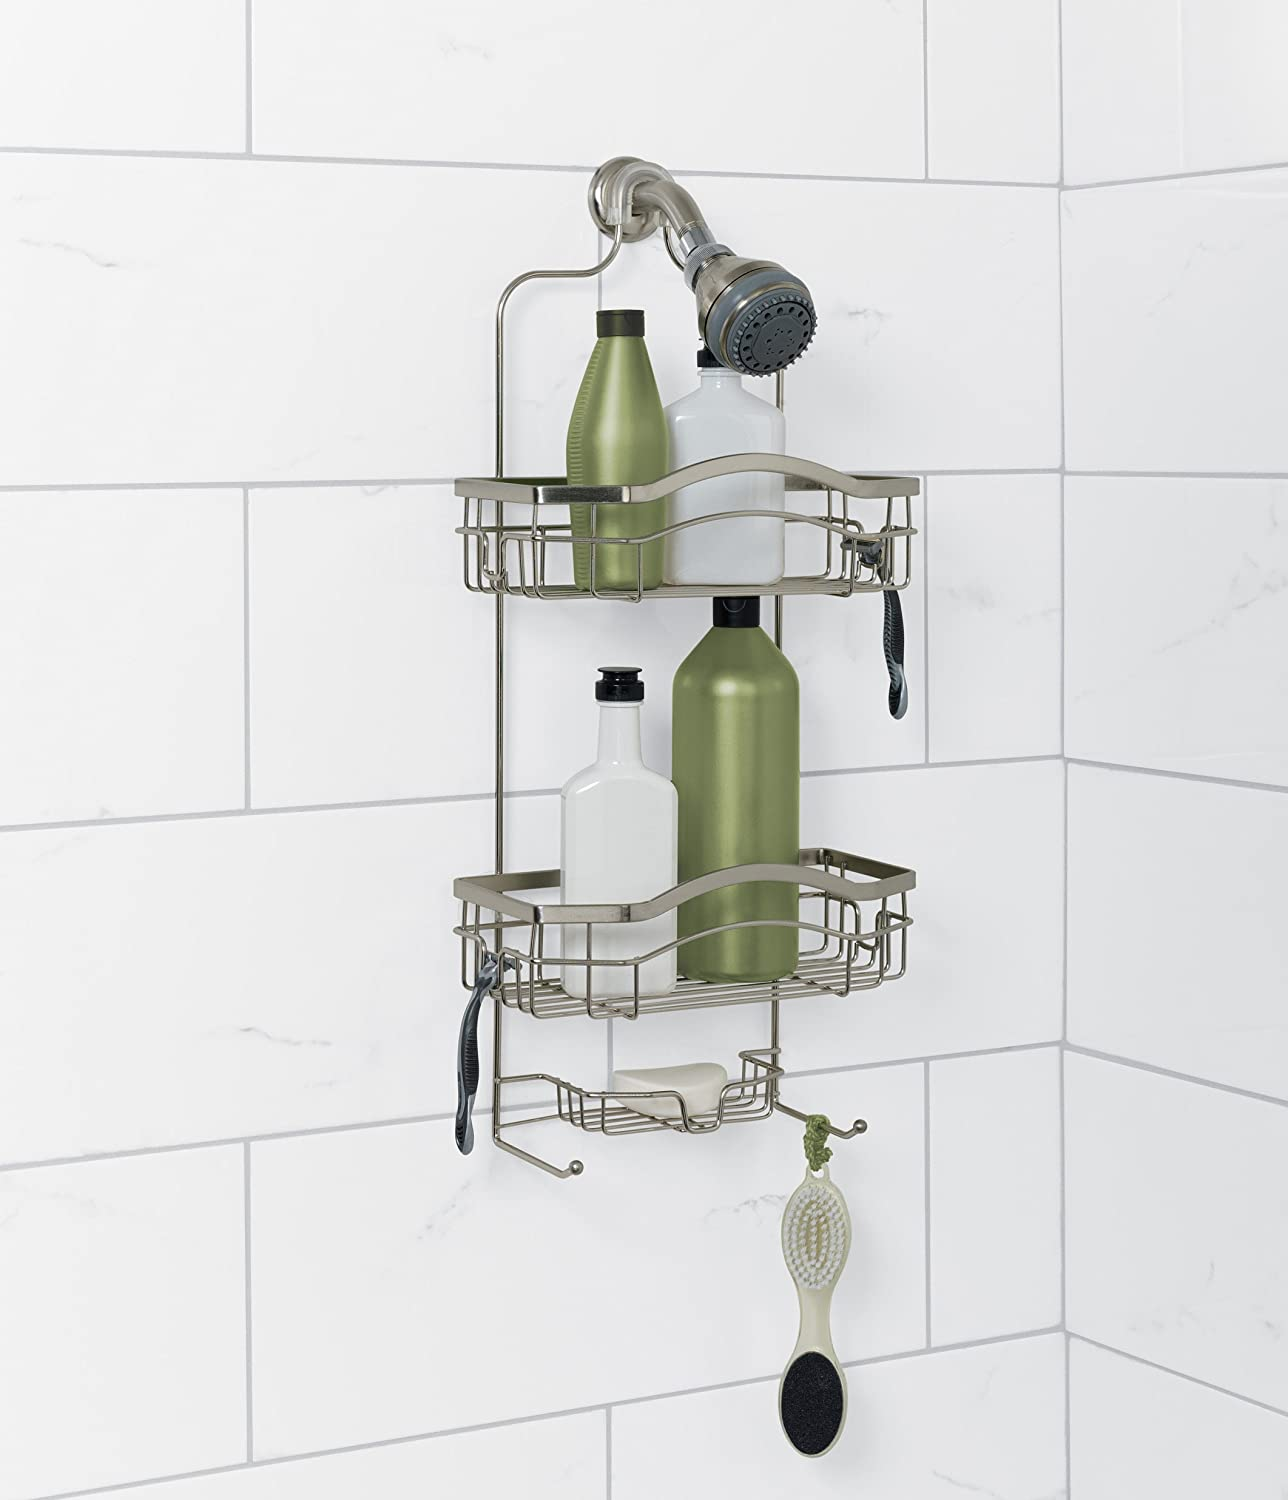 Over-the-Showerhead Stainless Steel